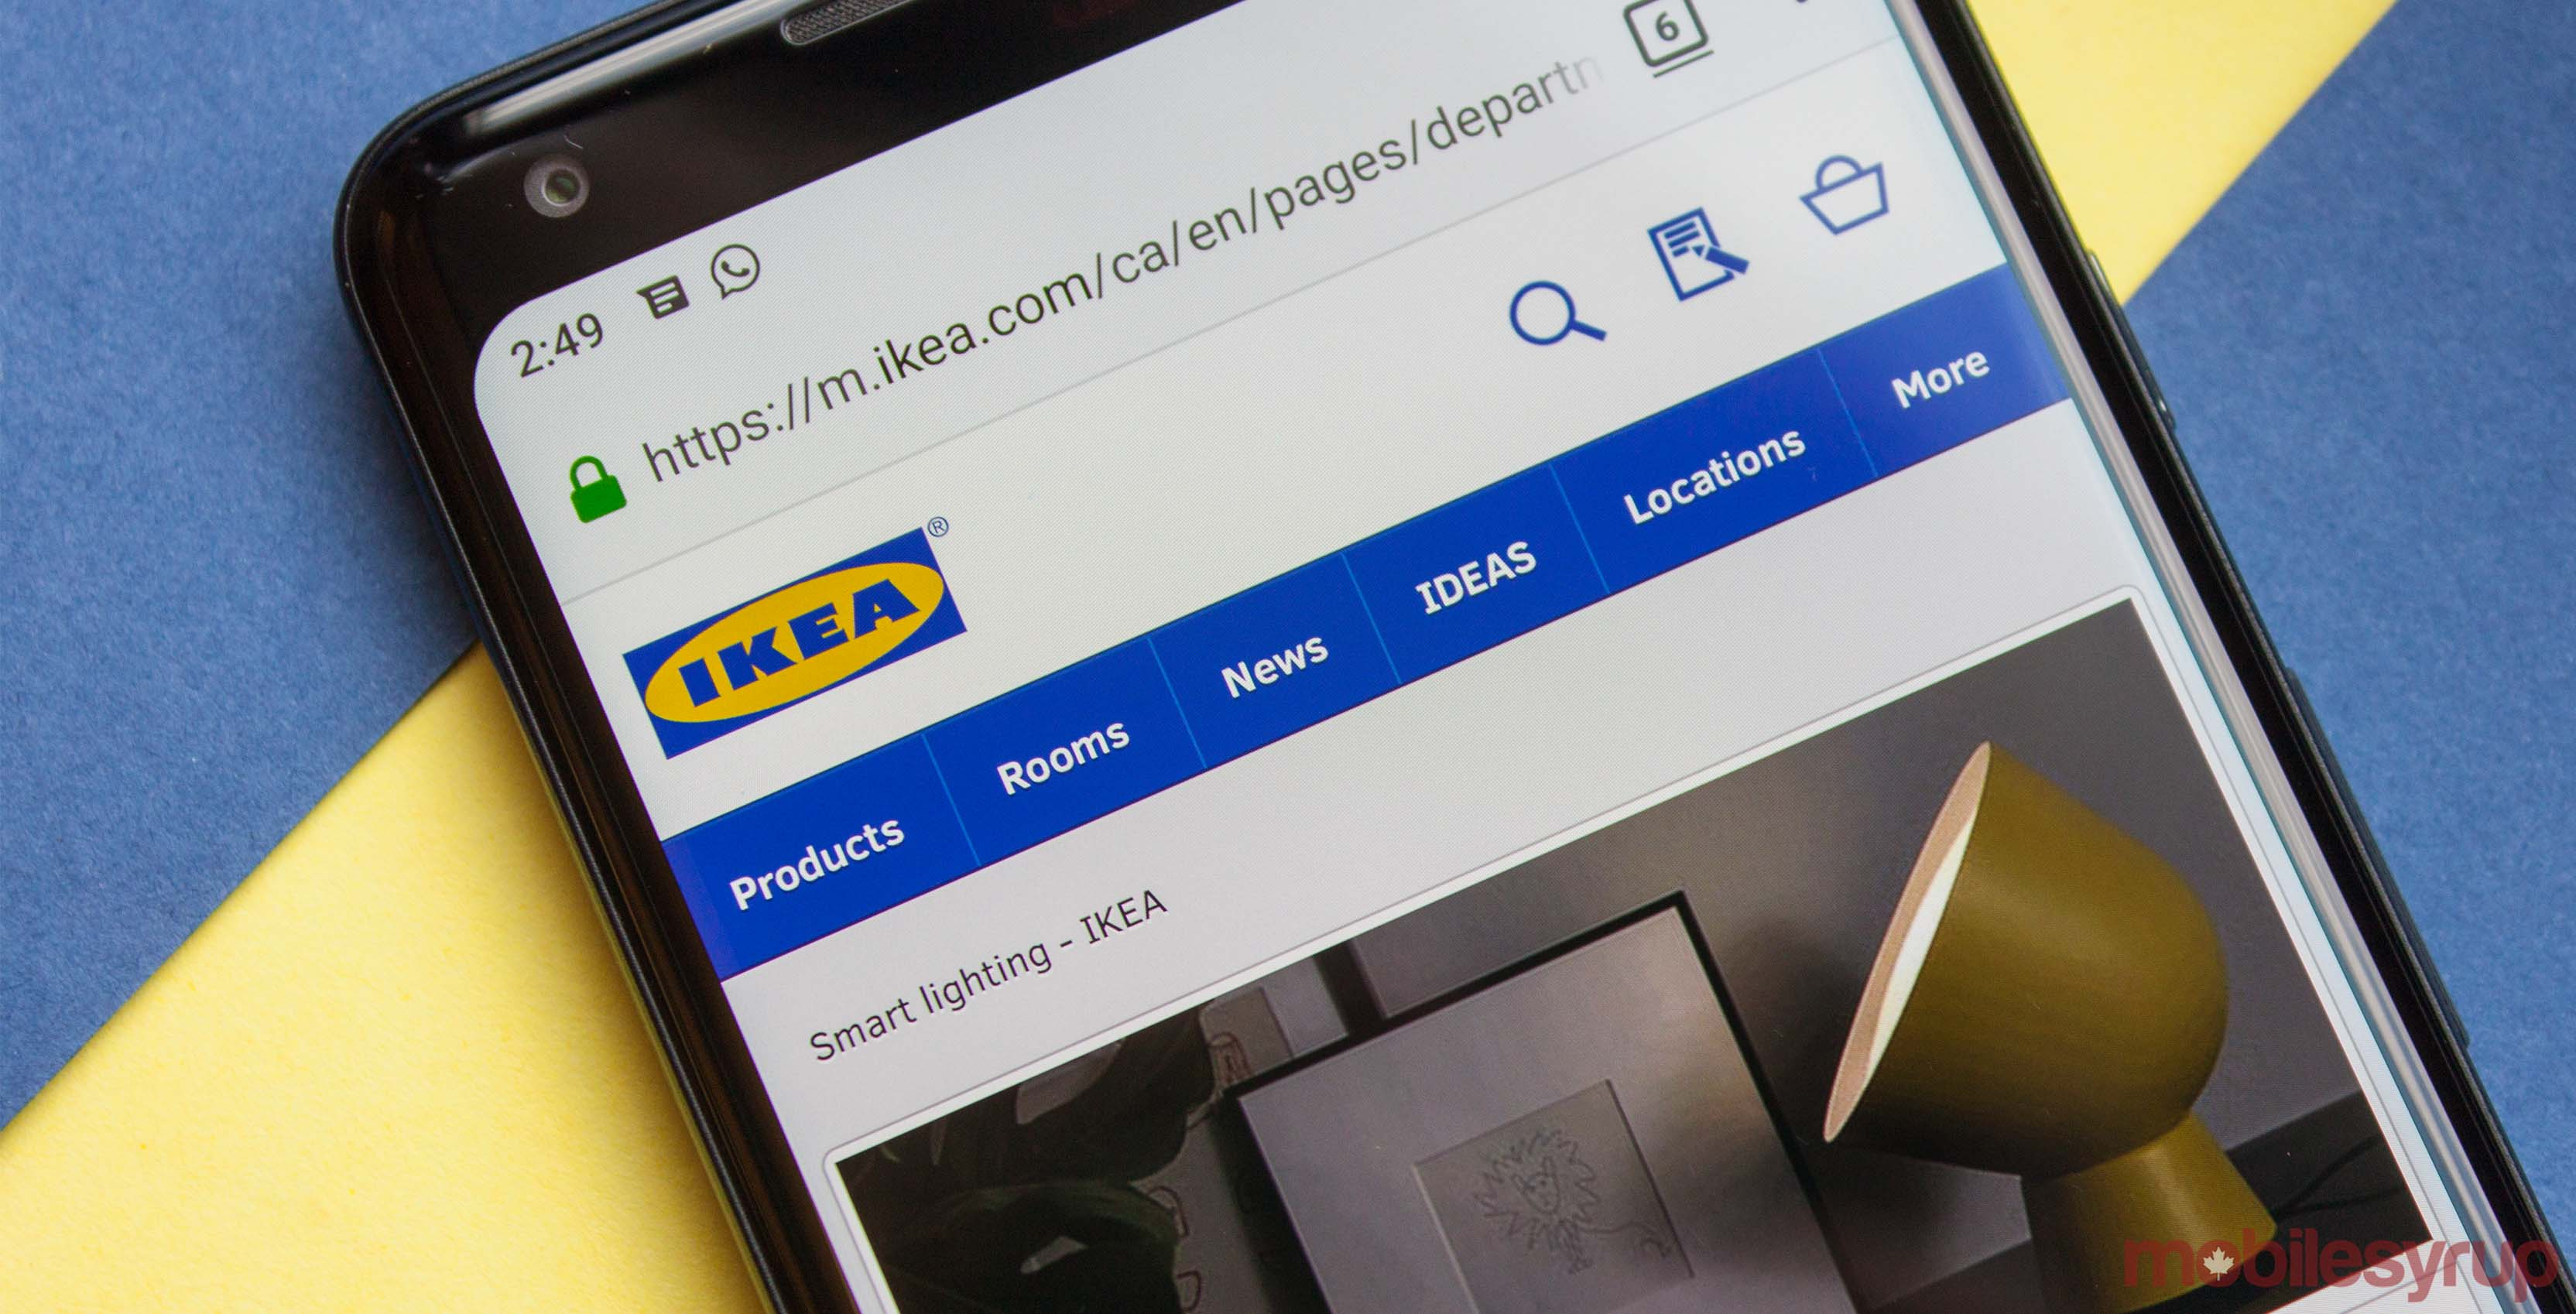 Ikea website on Android